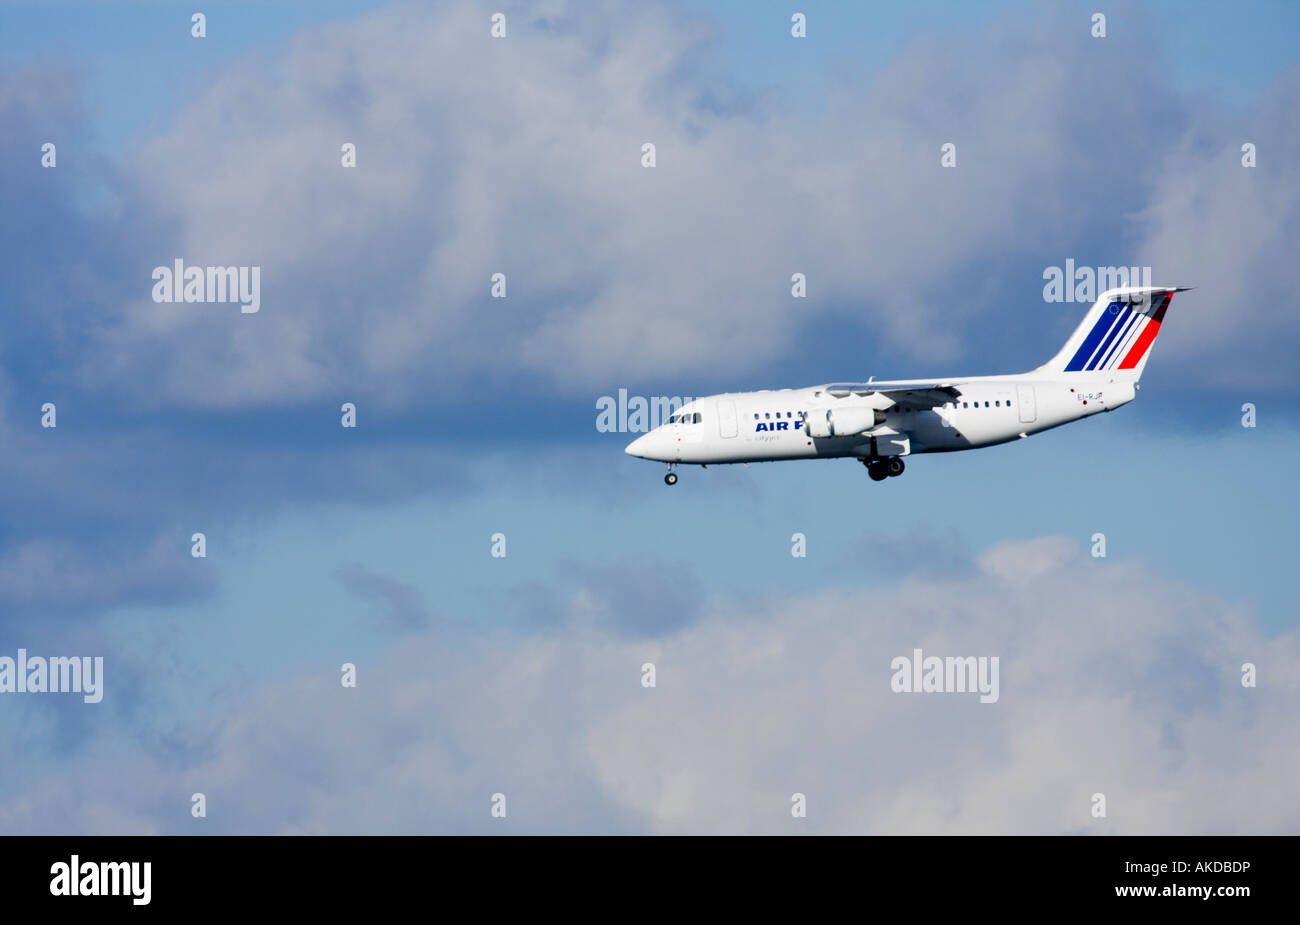 Air France City Jet BAE 146 coming into land at City Airport London - Stock Image